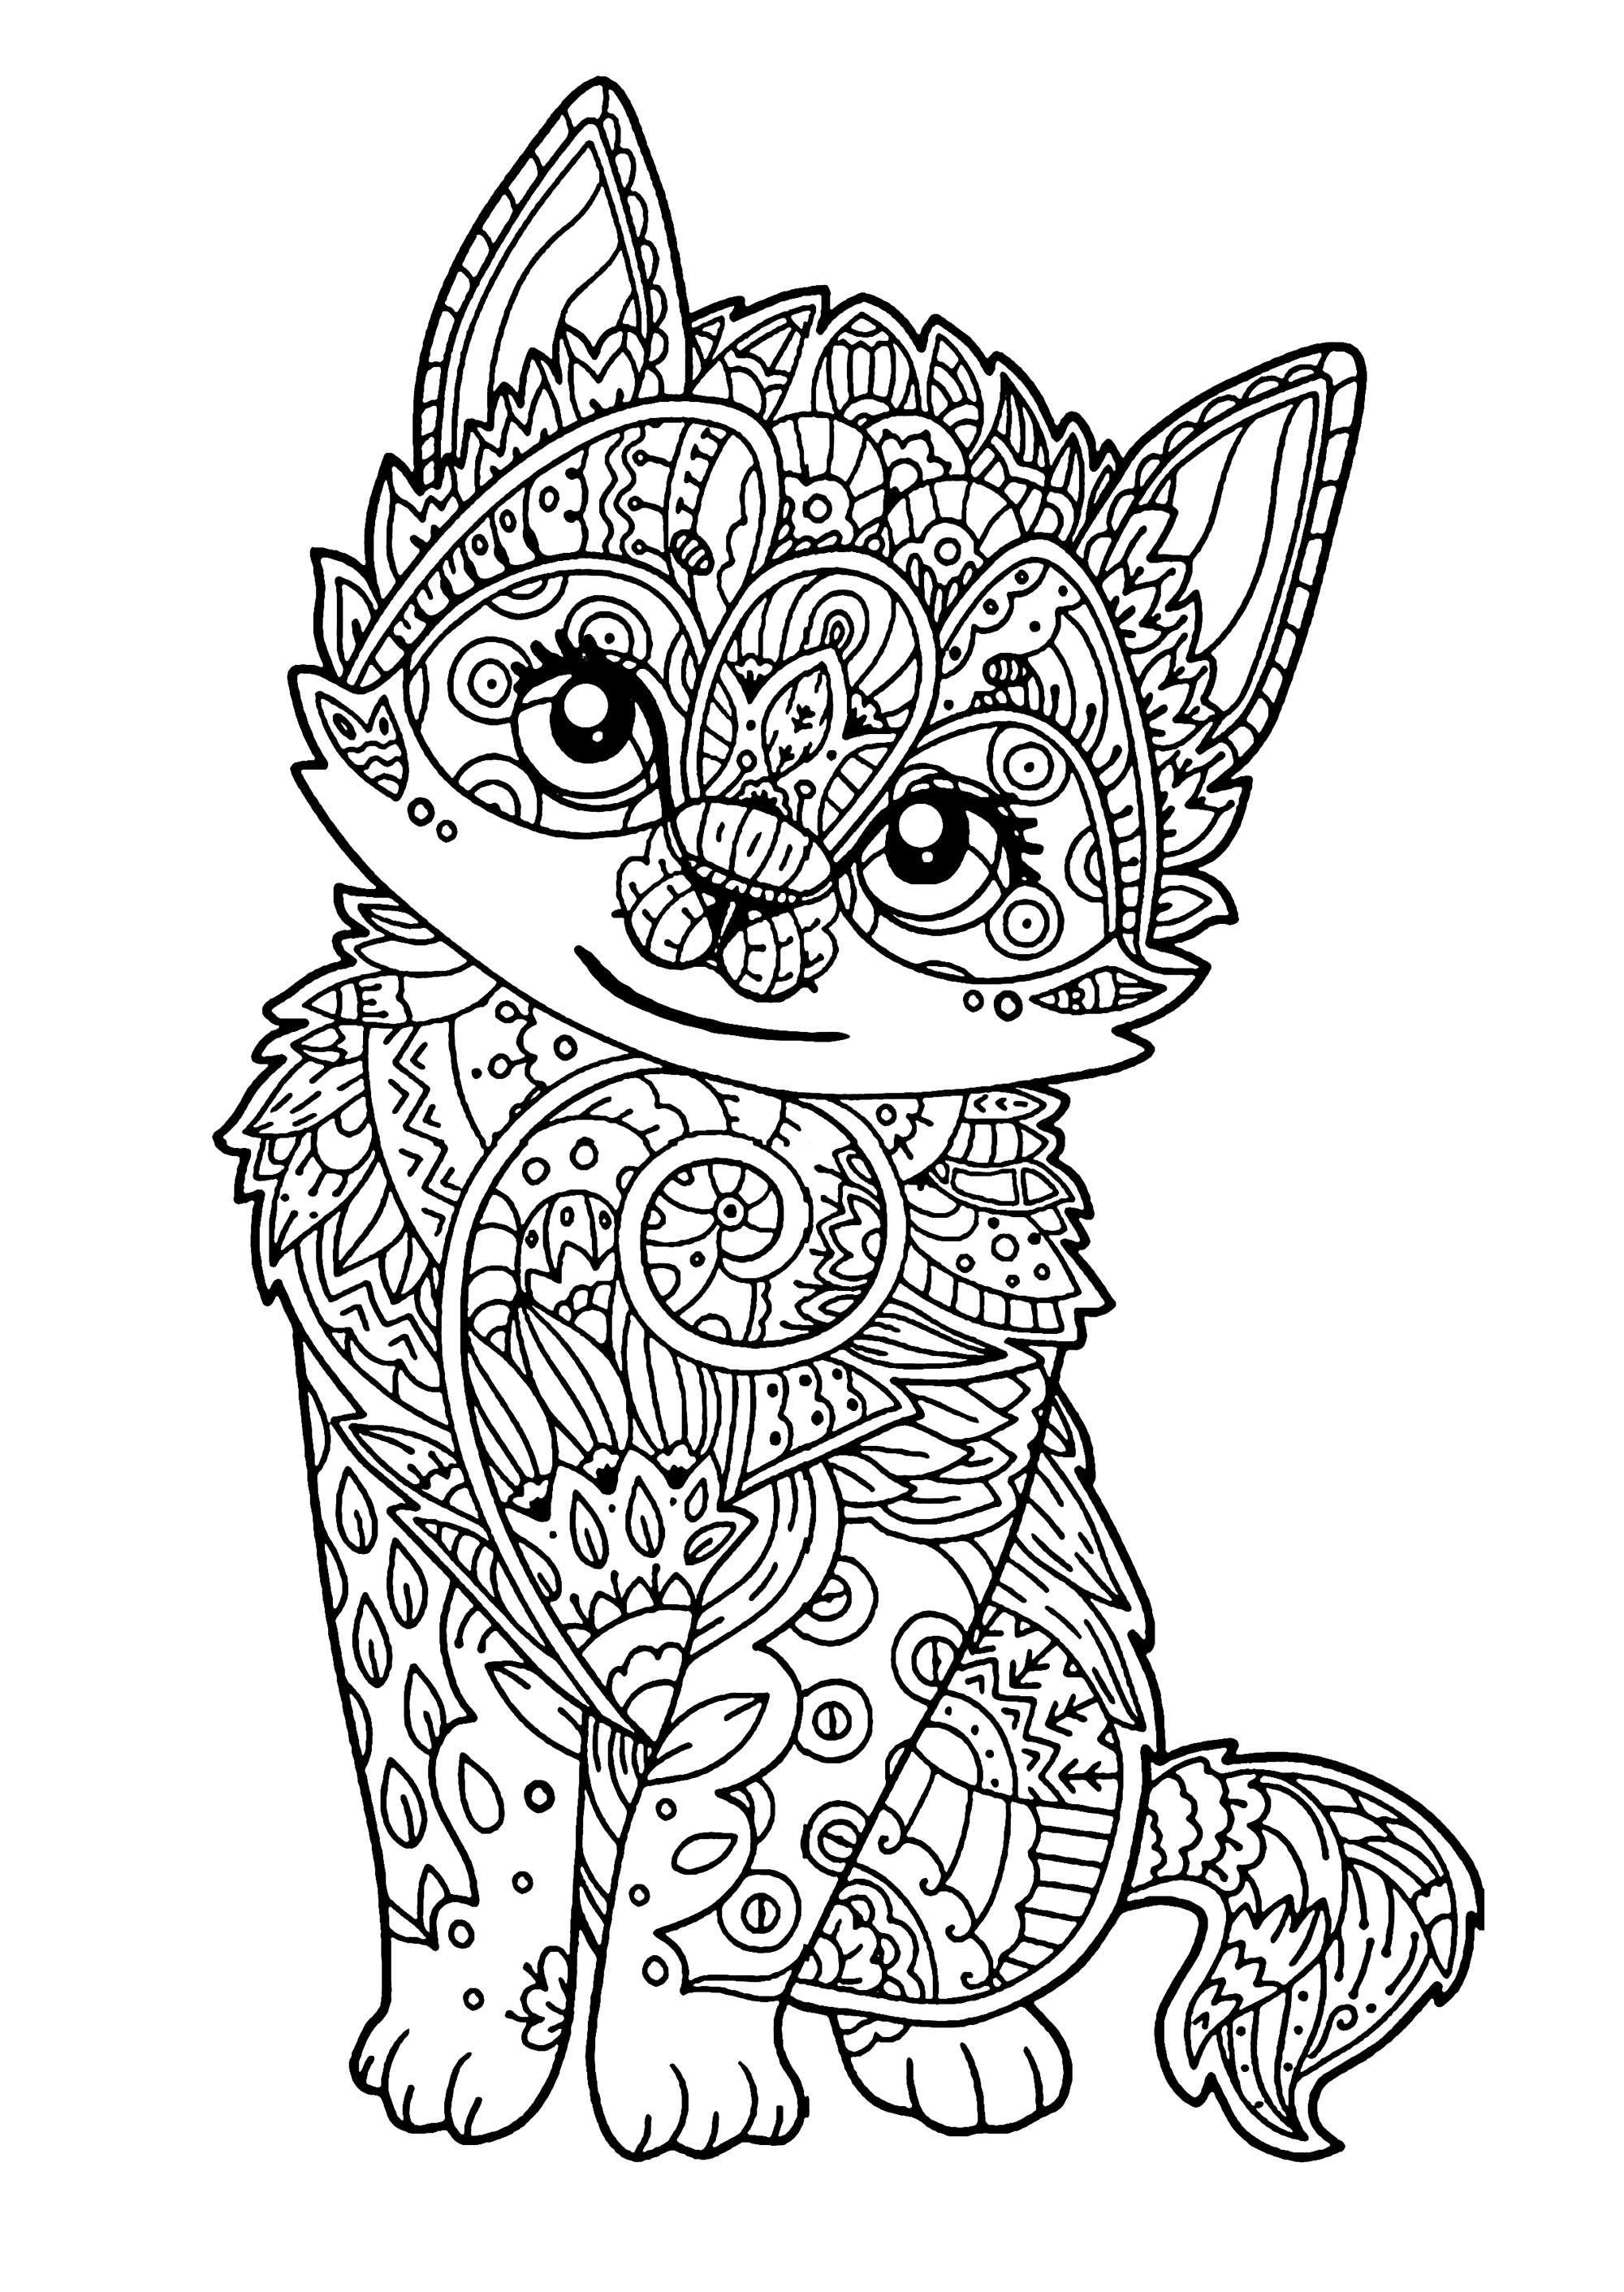 printable cat coloring pages free printable cat coloring pages for kids cool2bkids cat coloring pages printable